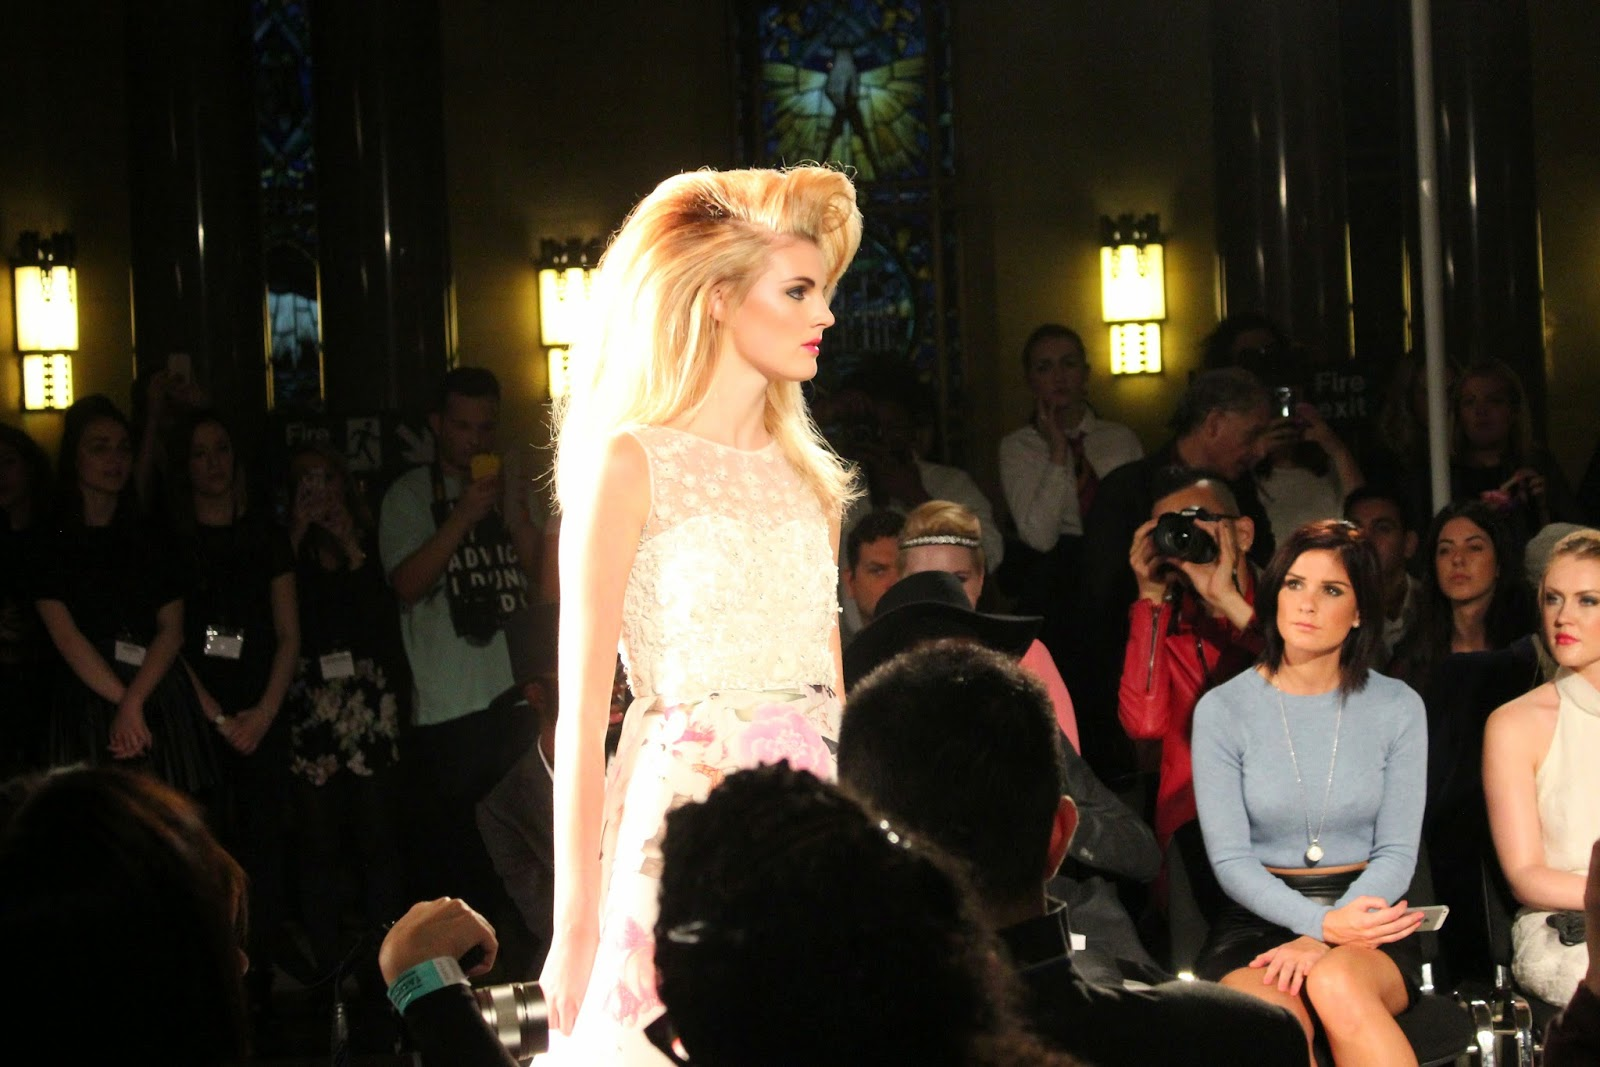 london-fashion-week-2014-lfw-spring-summer-2015-blogger-fashion-Hema-Kaul-catwalk-models-freemasons hall-fashion-scout-top-skirt